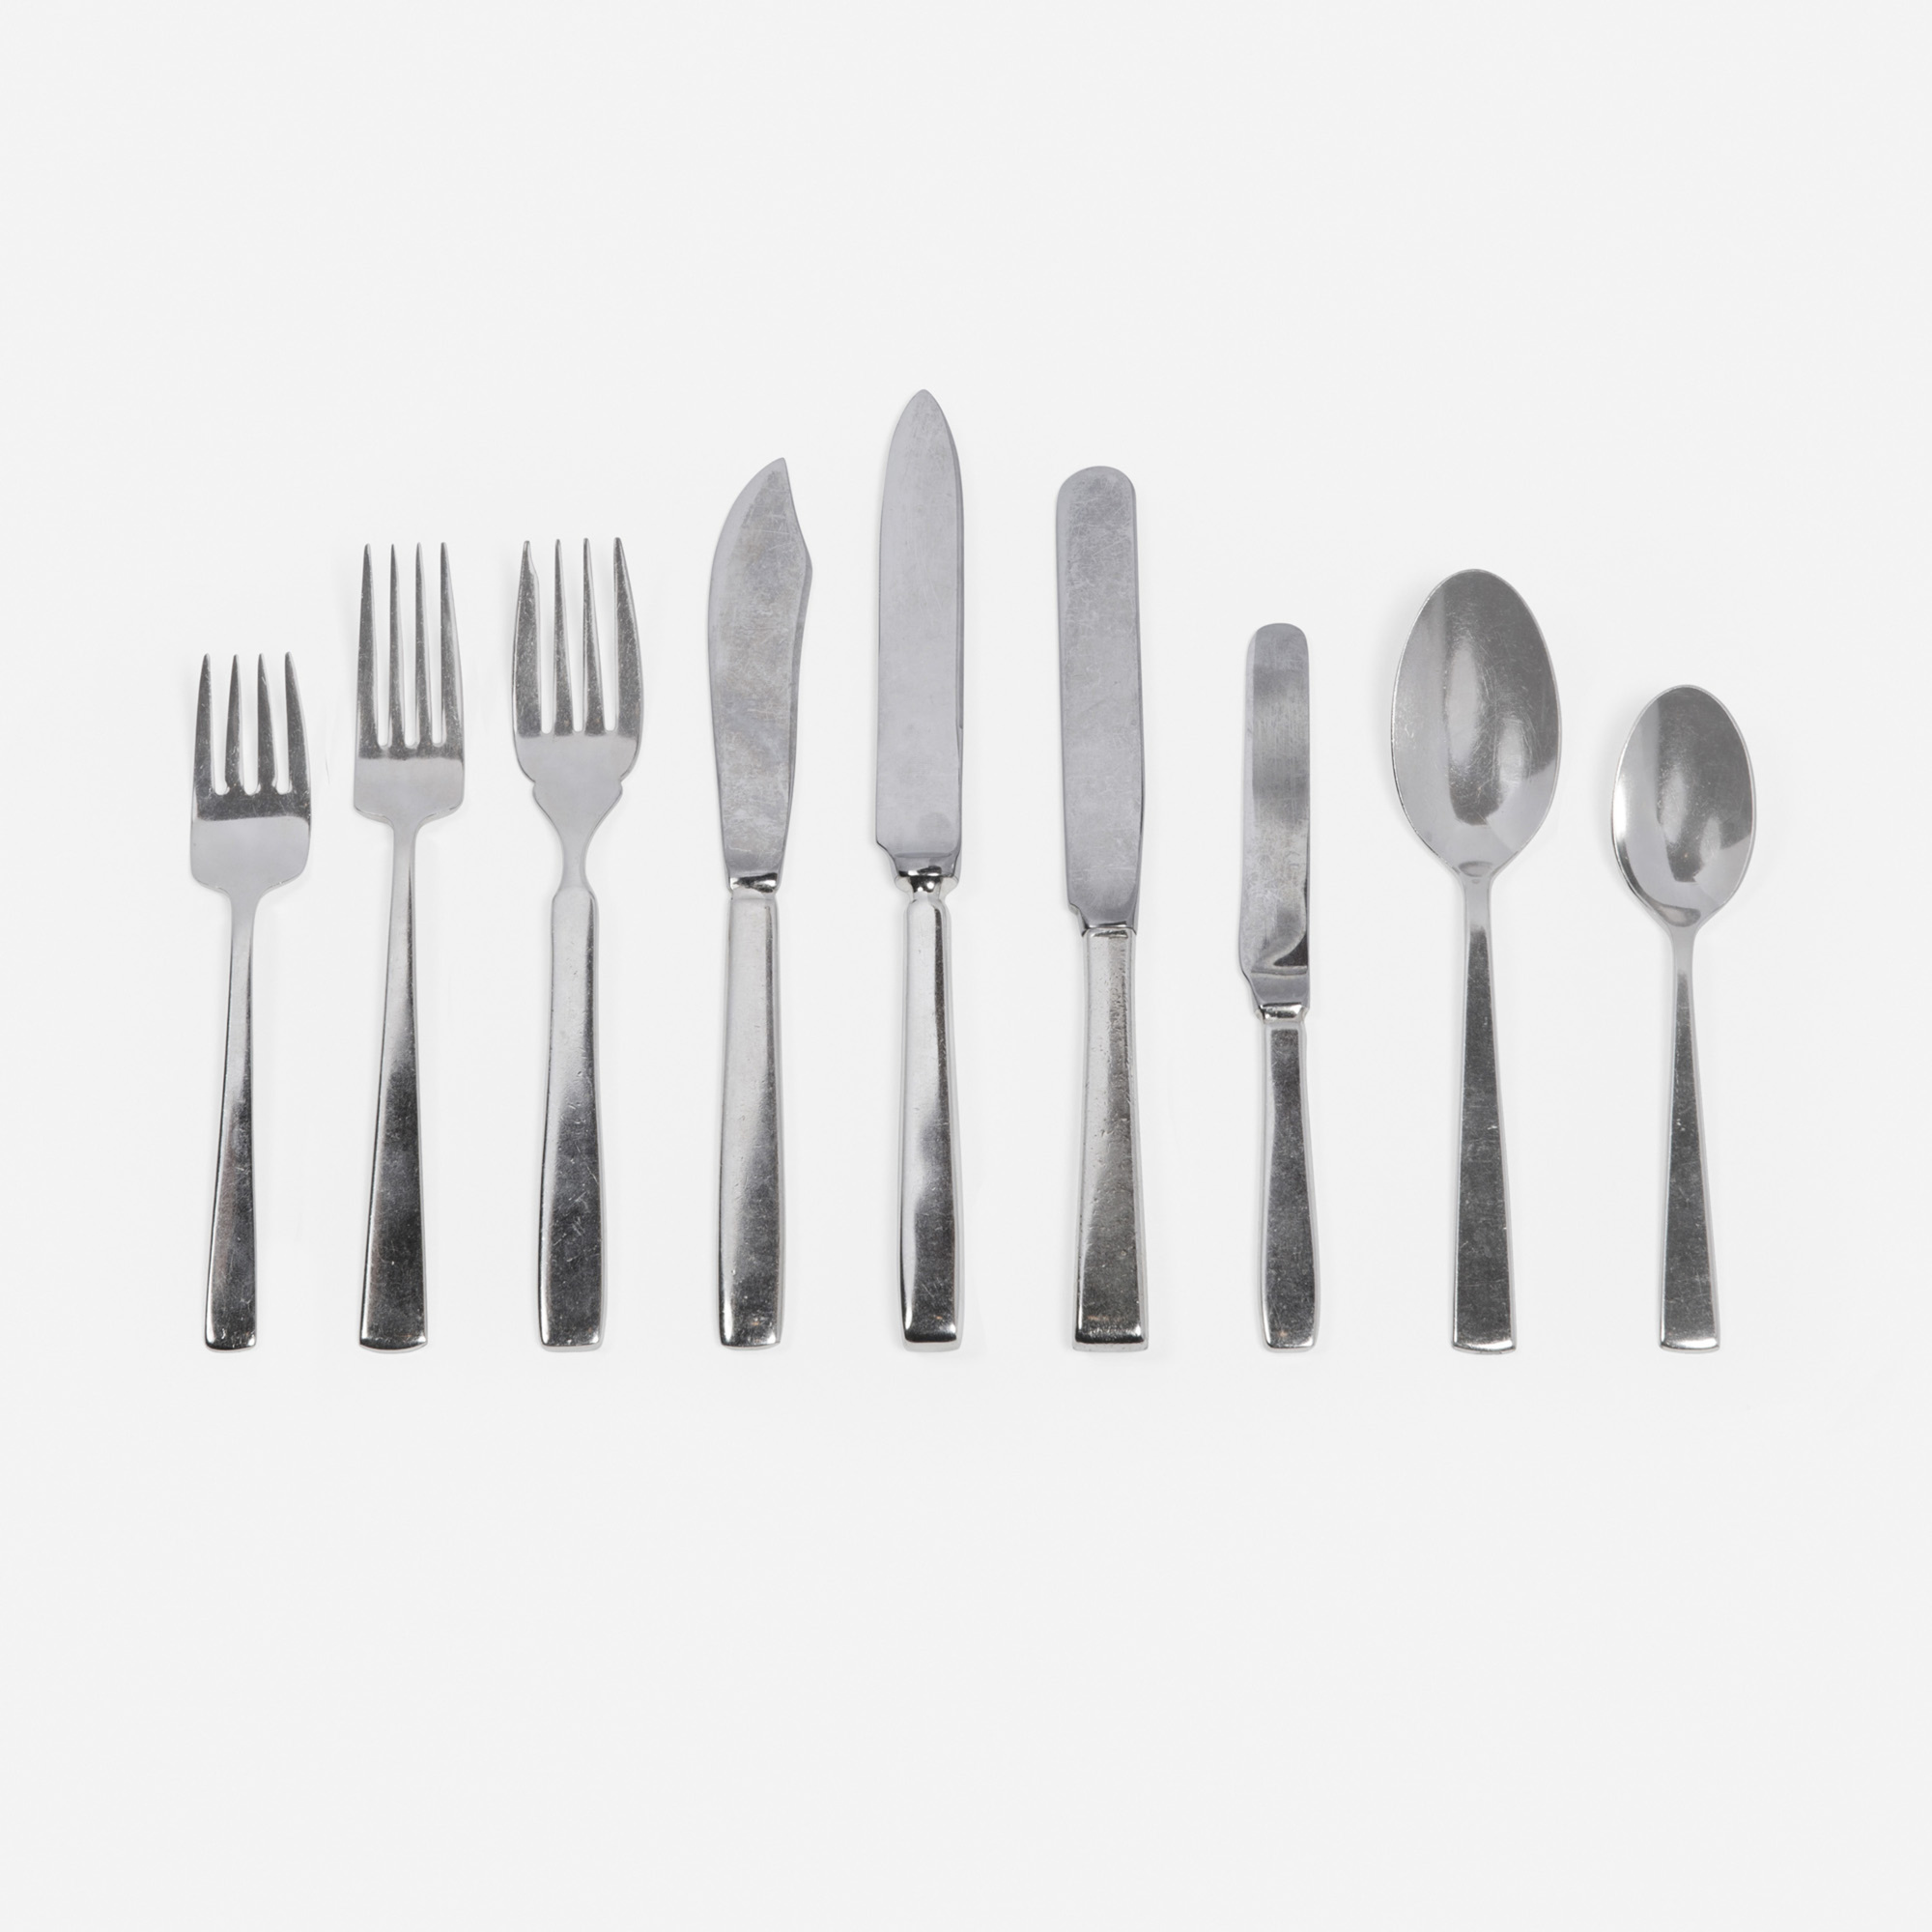 336: Garth and Ada Louise Huxtable / Four Seasons Luncheon flatware from the Grill Room, service for twelve (1 of 1)